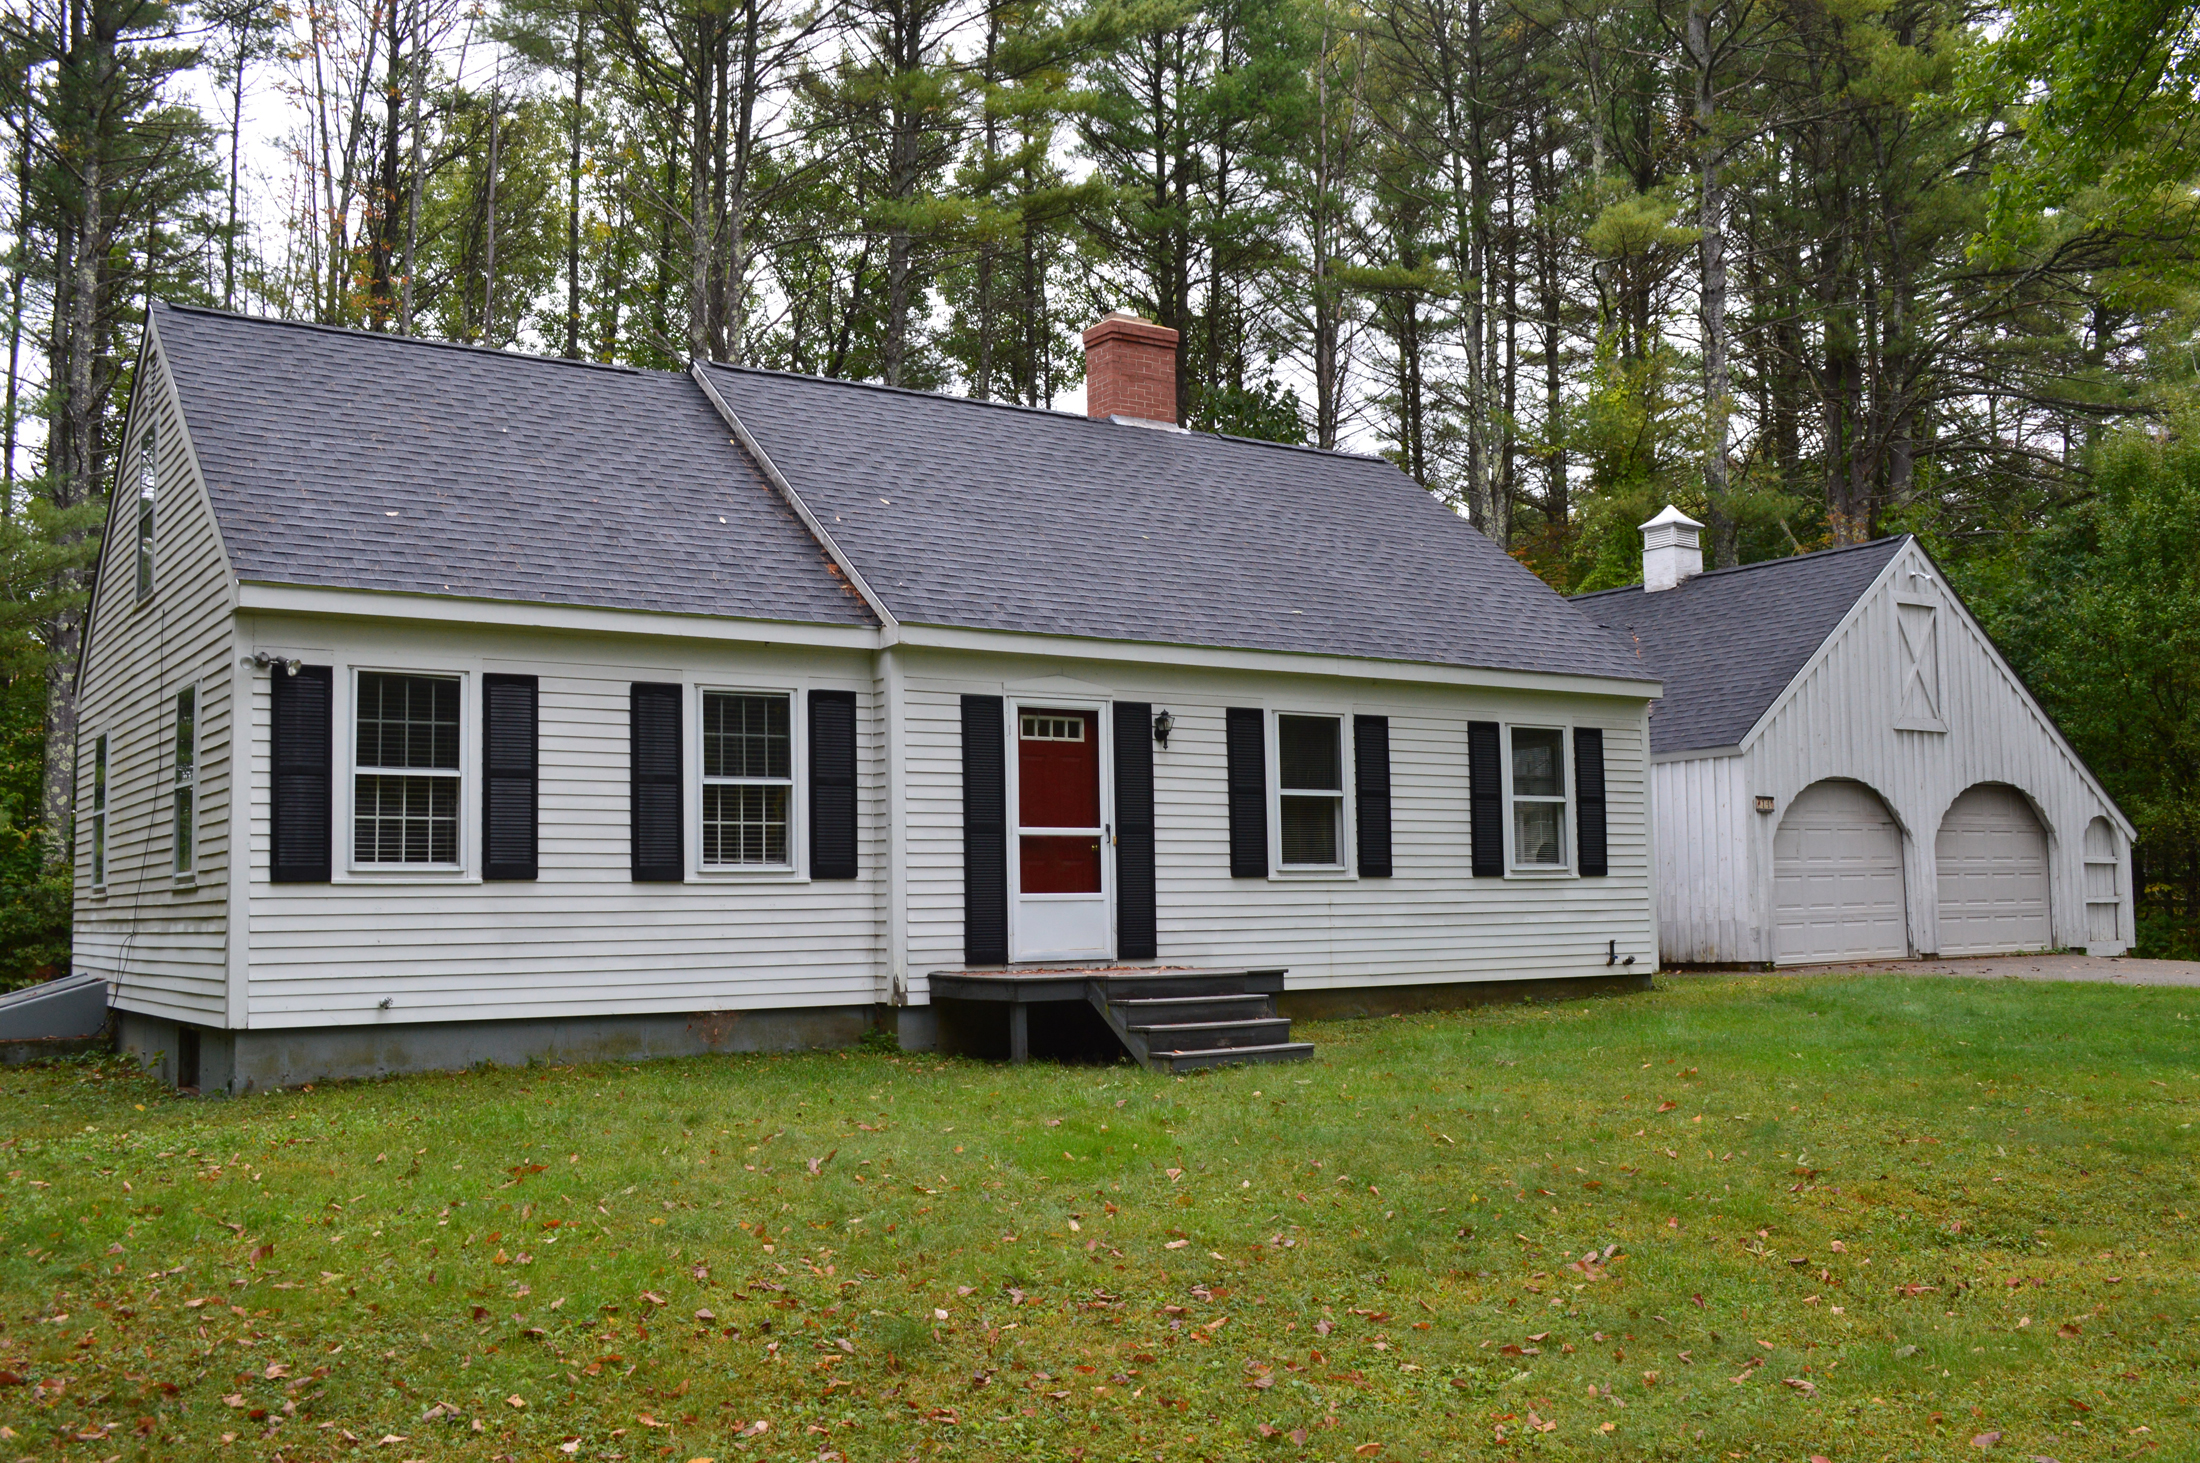 Maison unifamiliale pour l Vente à Charming Country Cape 14 Reedy Rd Moultonborough, New Hampshire, 03254 États-Unis